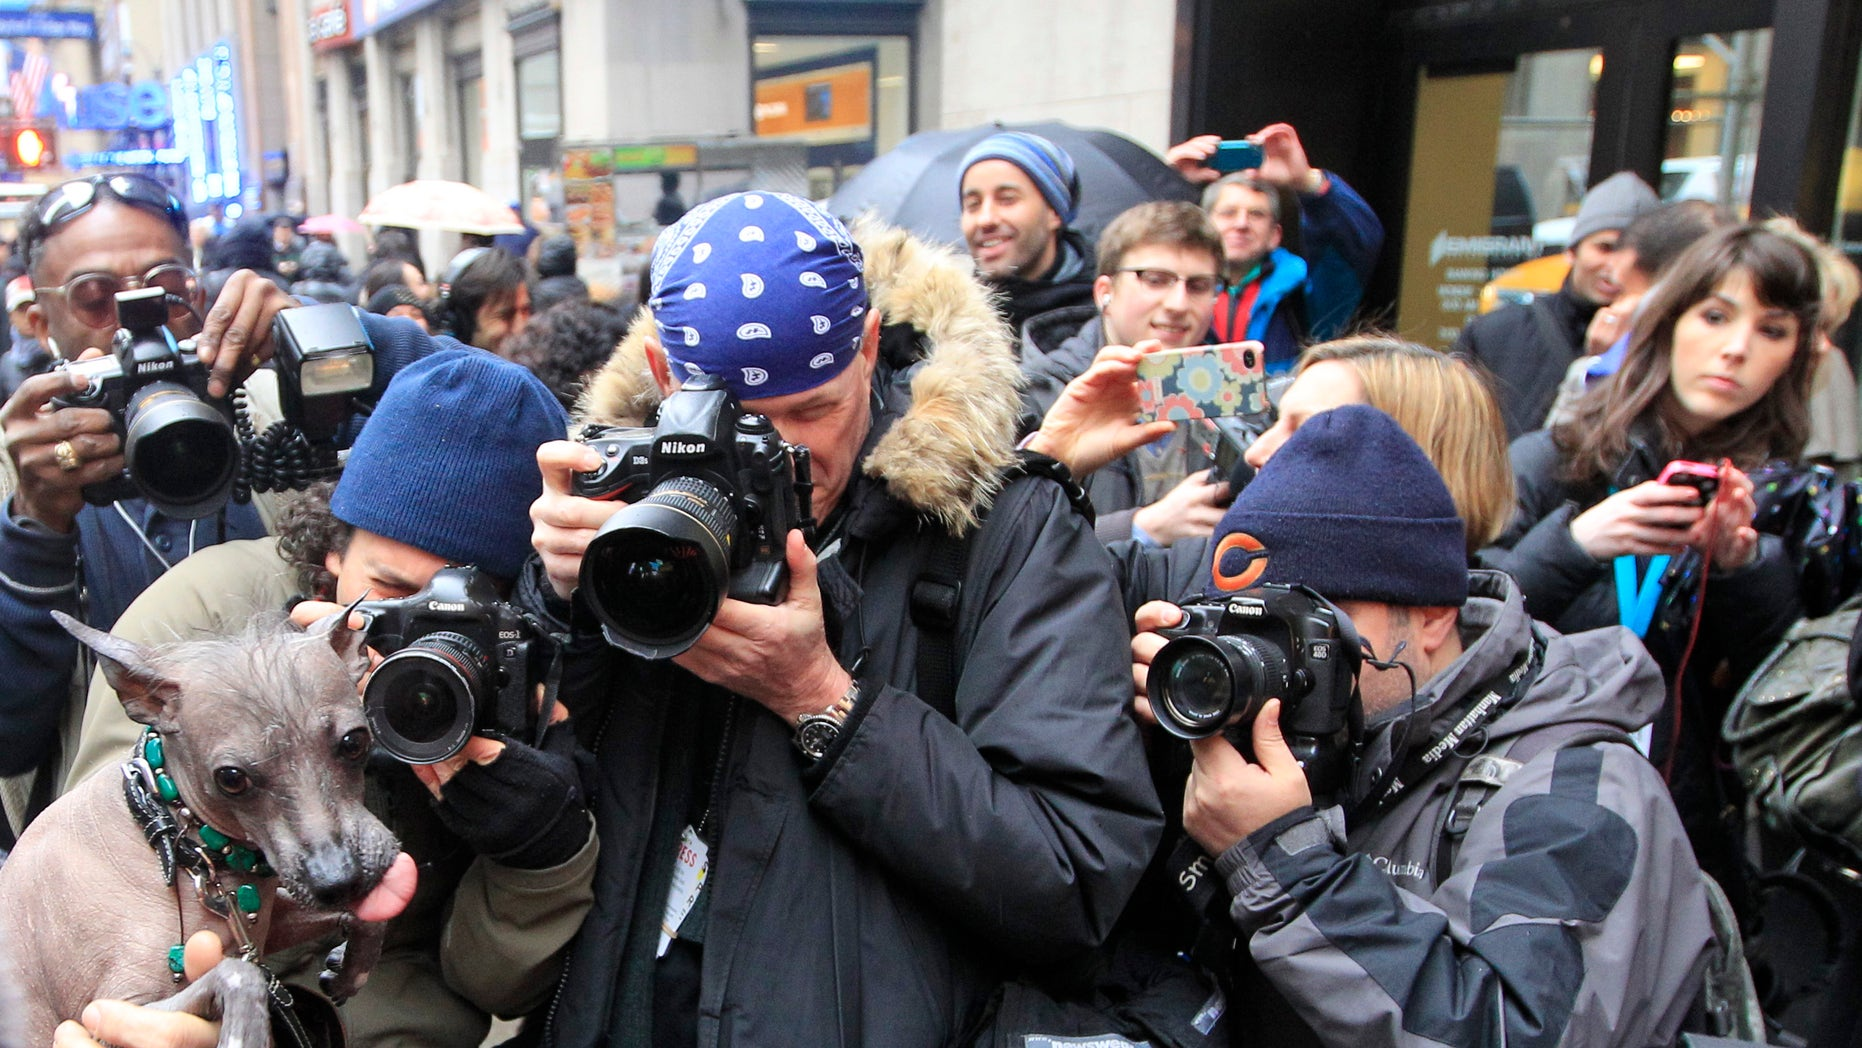 Photographers surround Alma Dulce, a 2-year old Xoloitzcuintli ahead of a news conference, on Jan. 26, 2012 in New York.